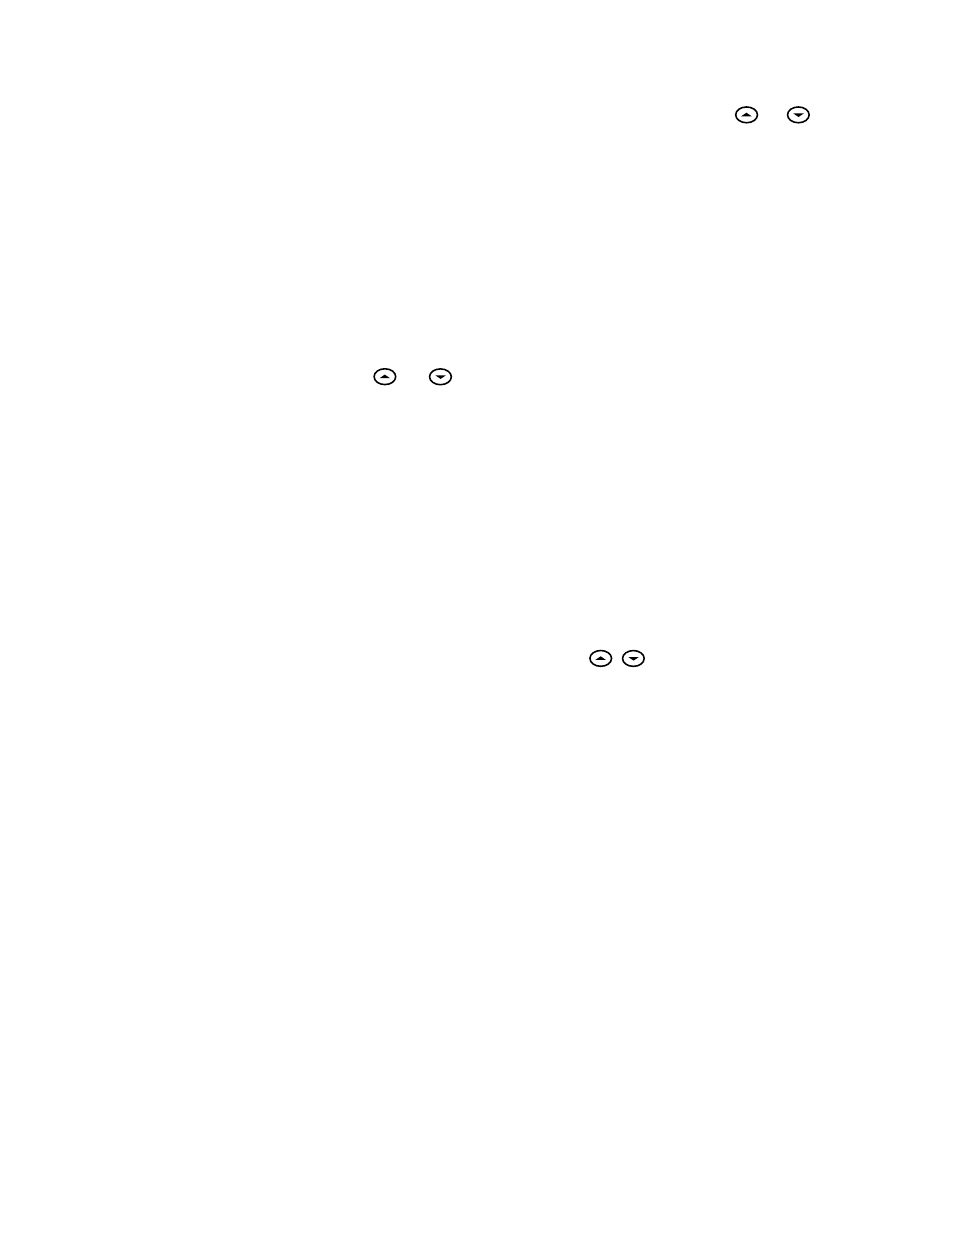 Operating features, Setting the thermostat | White Rodgers 1f86-244 User  Manual | Page